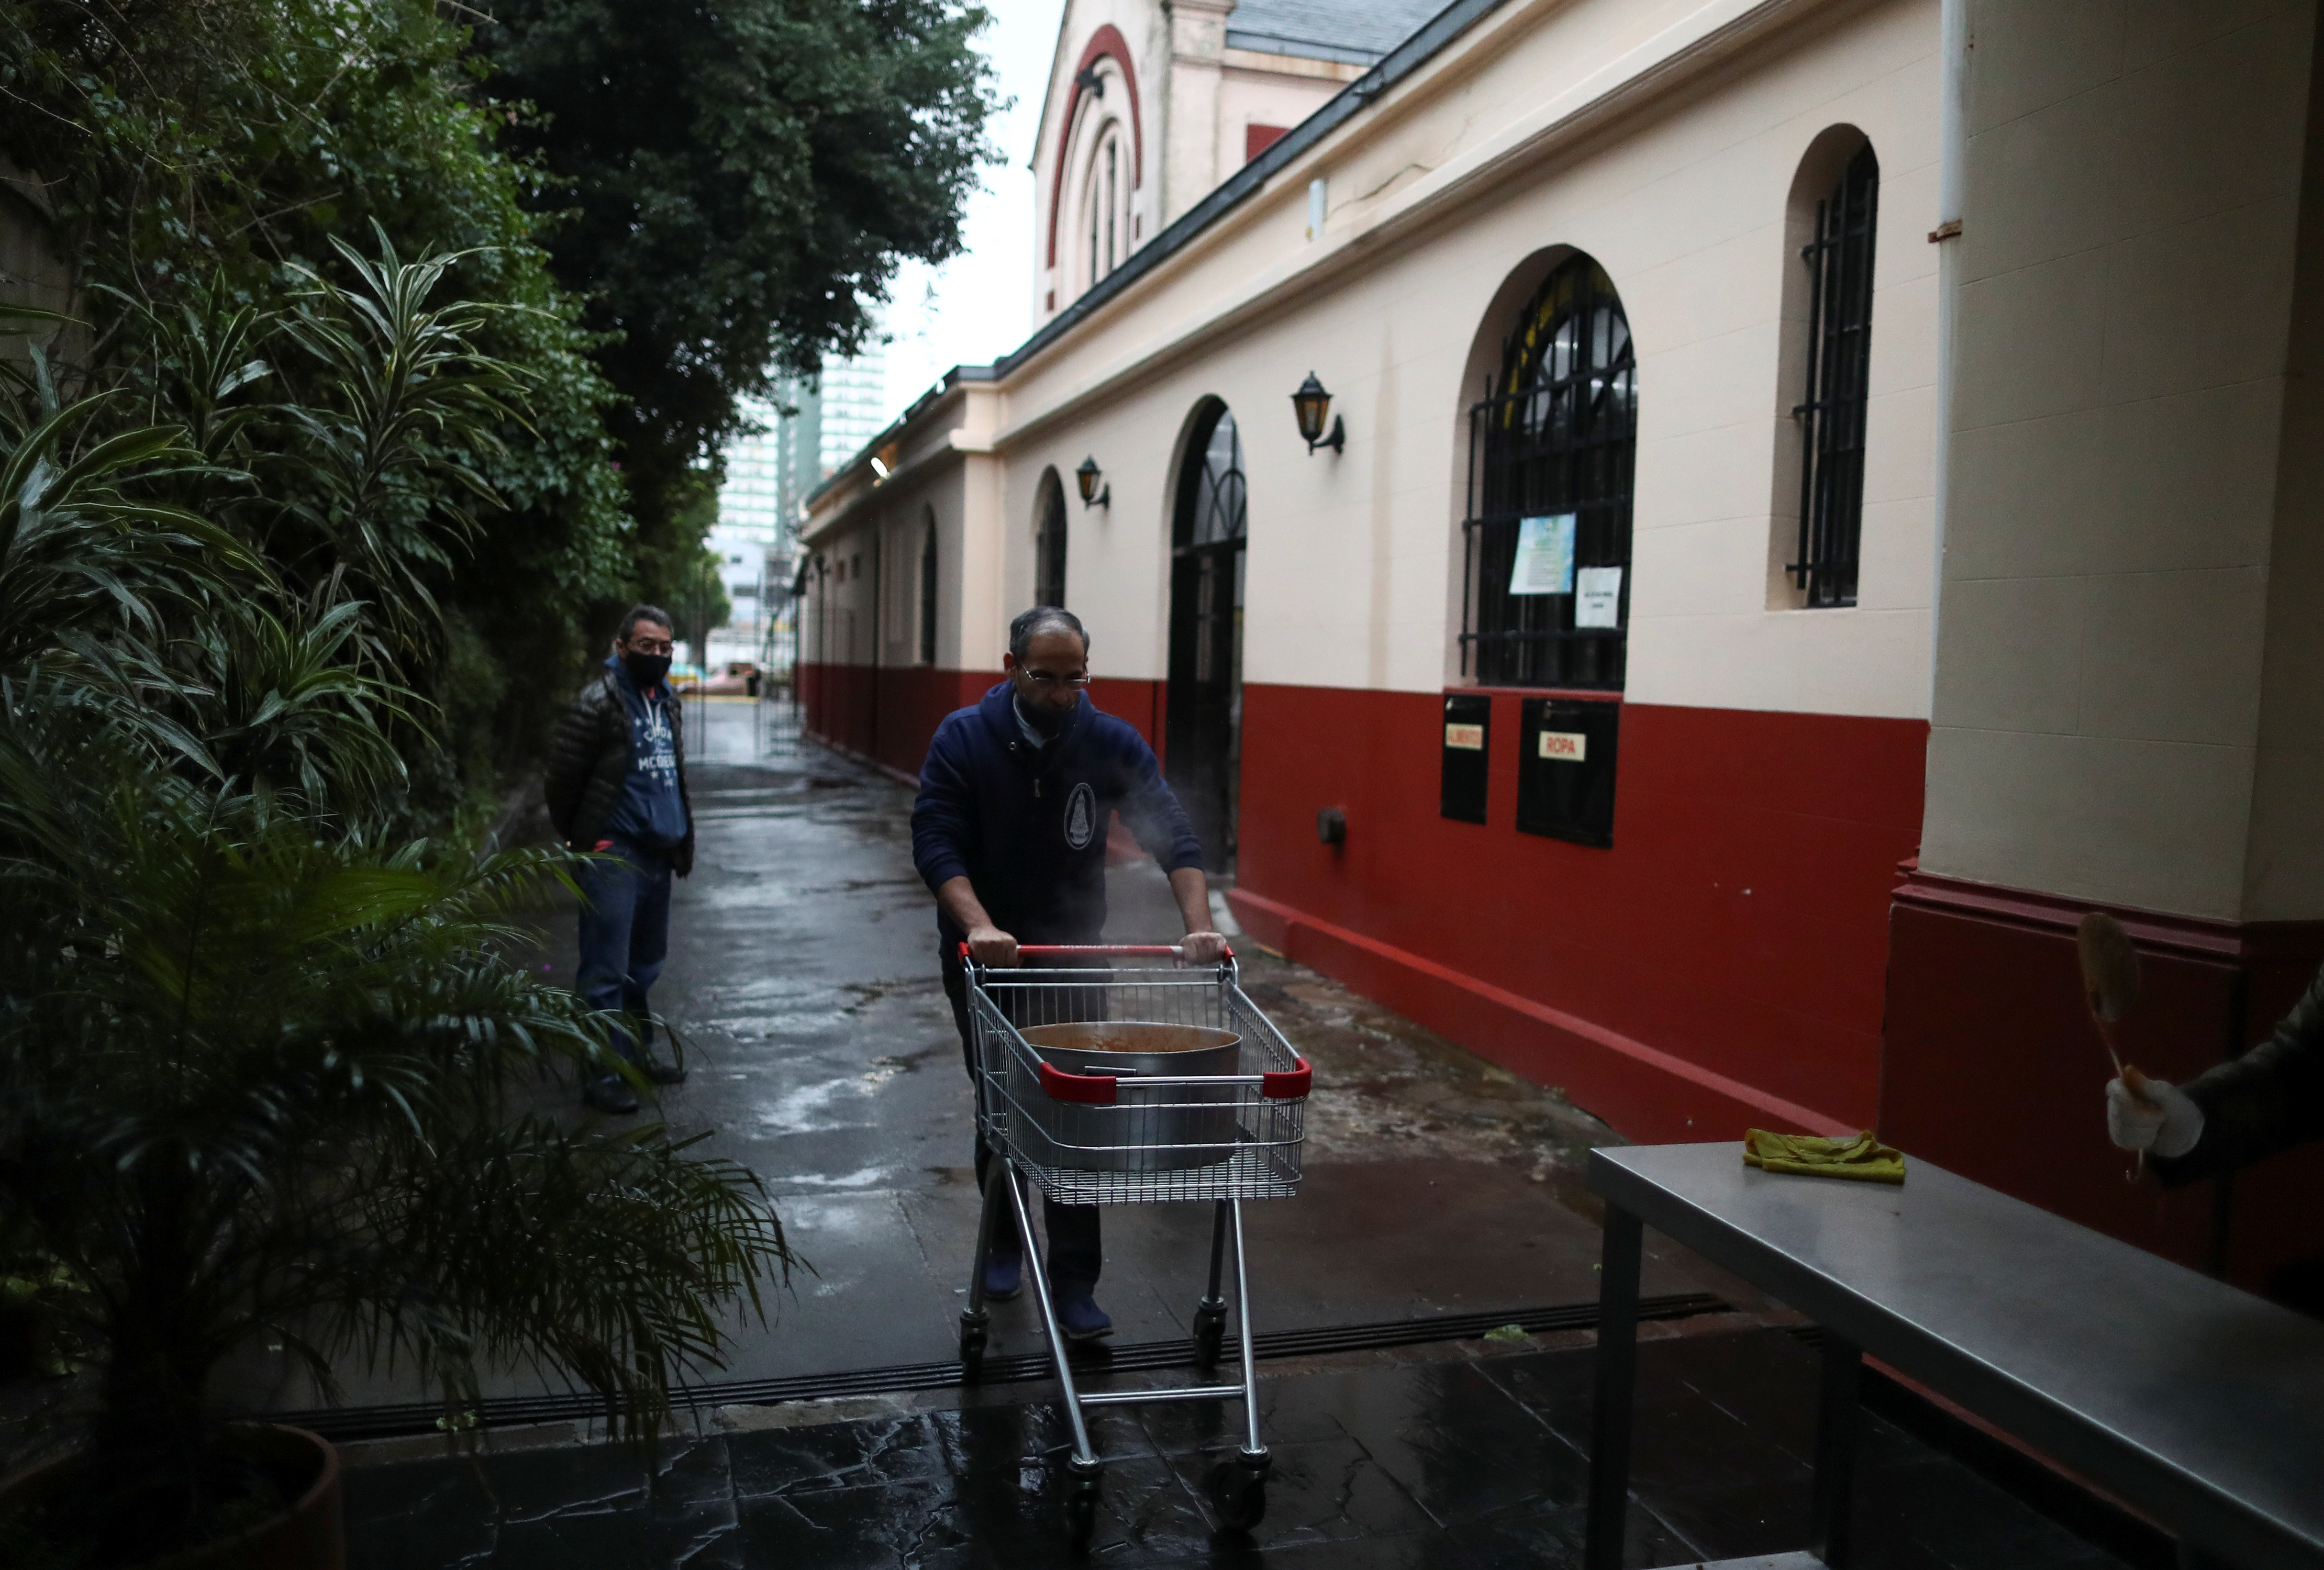 Father Eusebio Hernandez Greco pushes a cart with a pot of stew at a soup kitchen organized at the Caacupe church, during the coronavirus disease (COVID-19) outbreak, in Buenos Aires, Argentina July 23, 2020. Picture taken July 23, 2020. REUTERS/Agustin Marcarian - RC2N7I9S500P